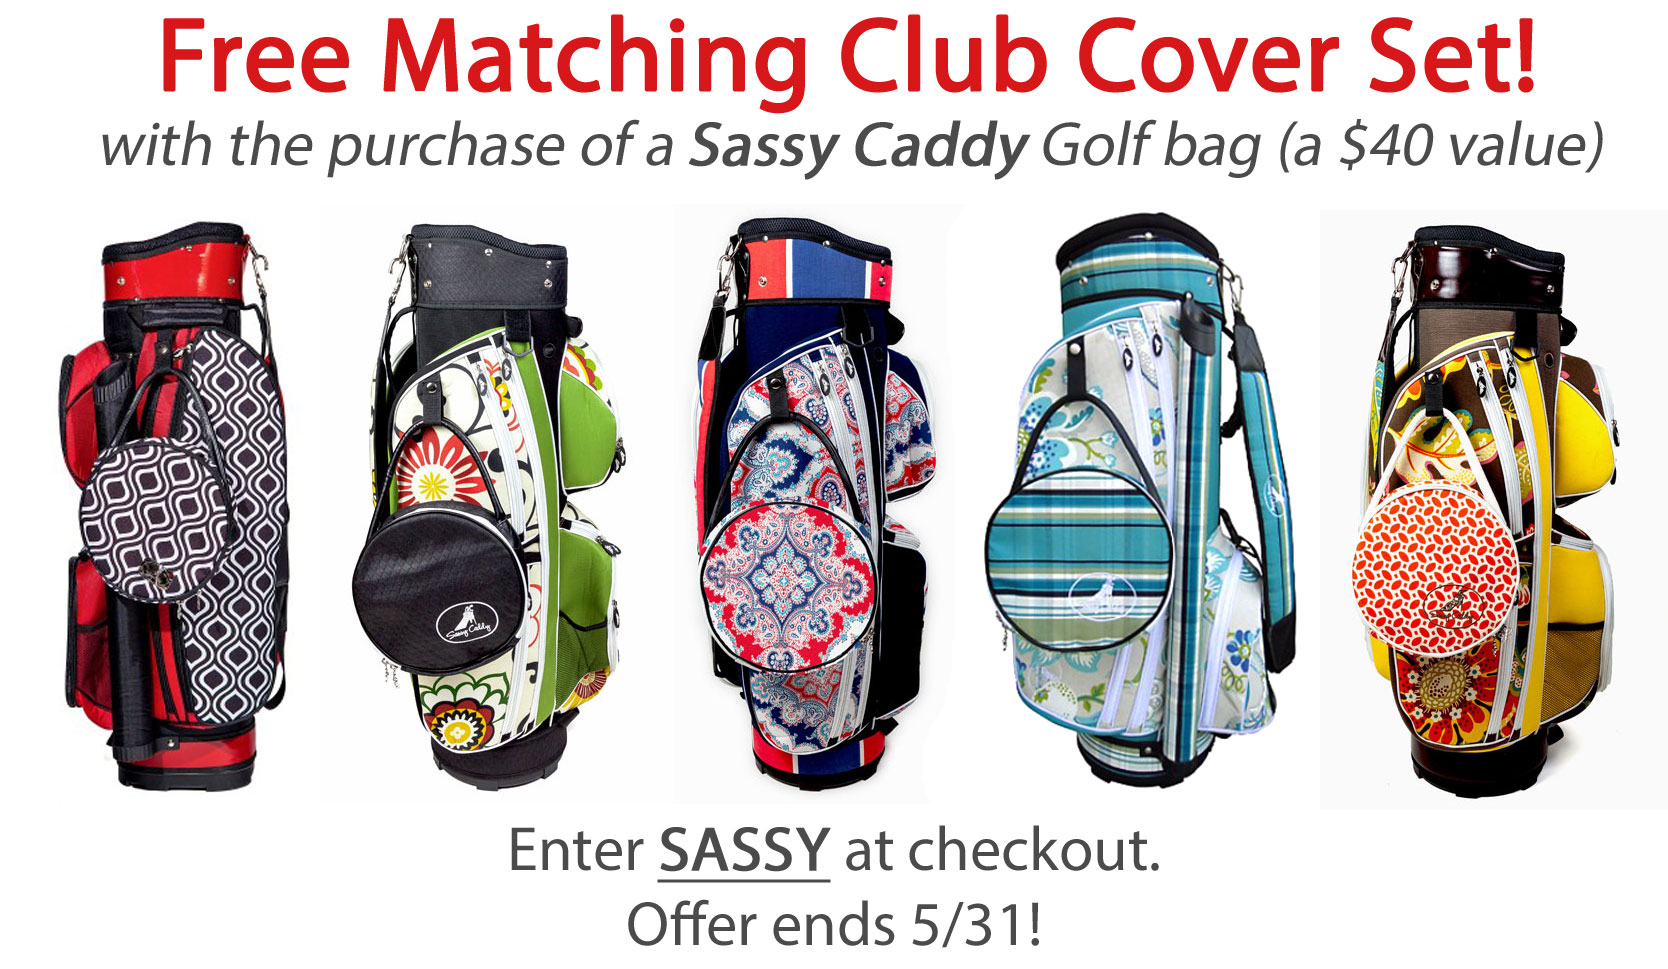 Add An Additional Hybrid Cover To Your Golf Bag And Club Set For Extra 10 These Designer Bags Are Made In The Usa Come A Variety Of